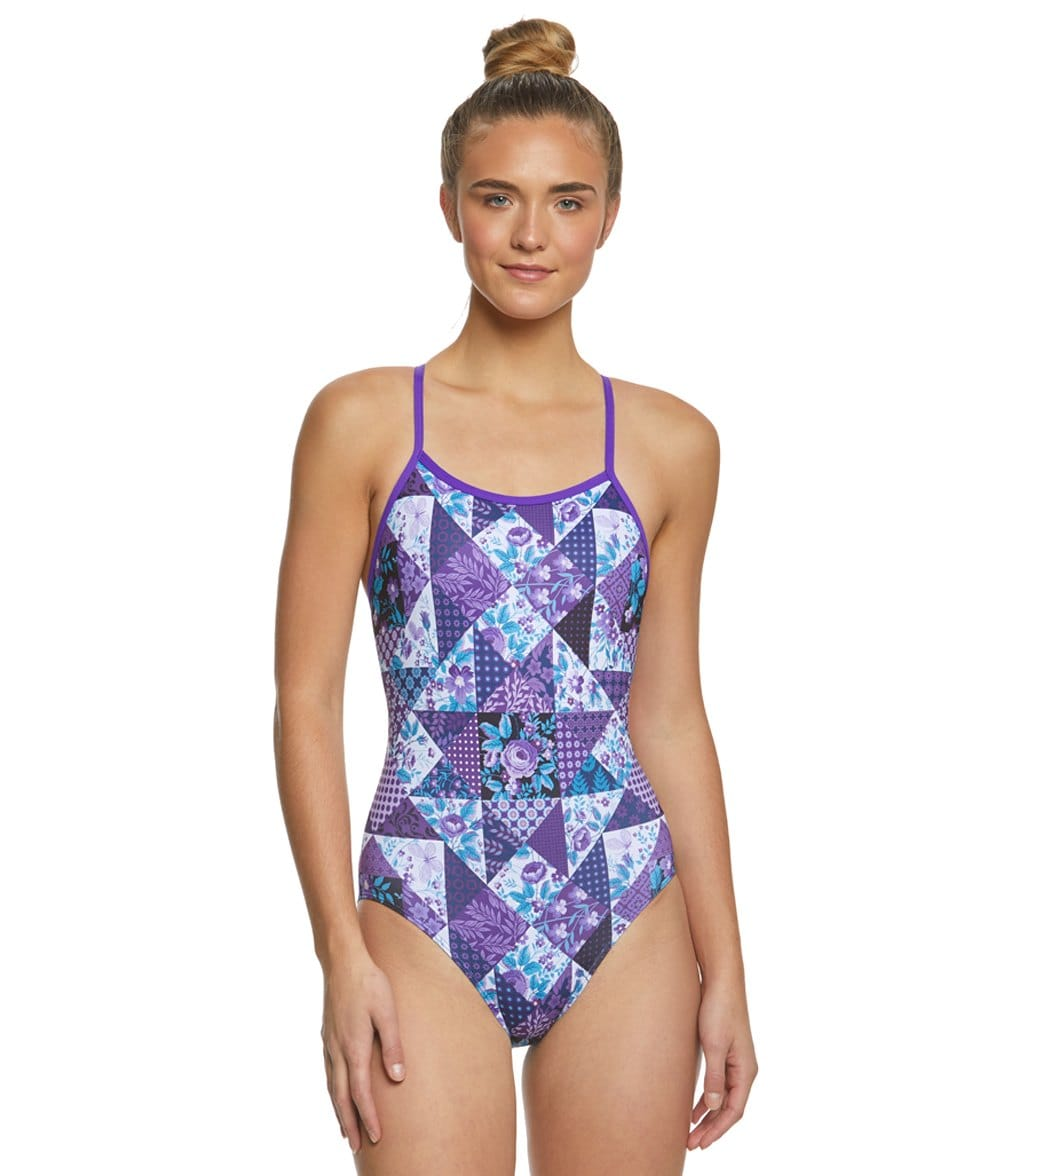 fbe14af167c Amanzi Womens Purple Plaid One Piece Swimsuit at SwimOutlet.com - Free  Shipping